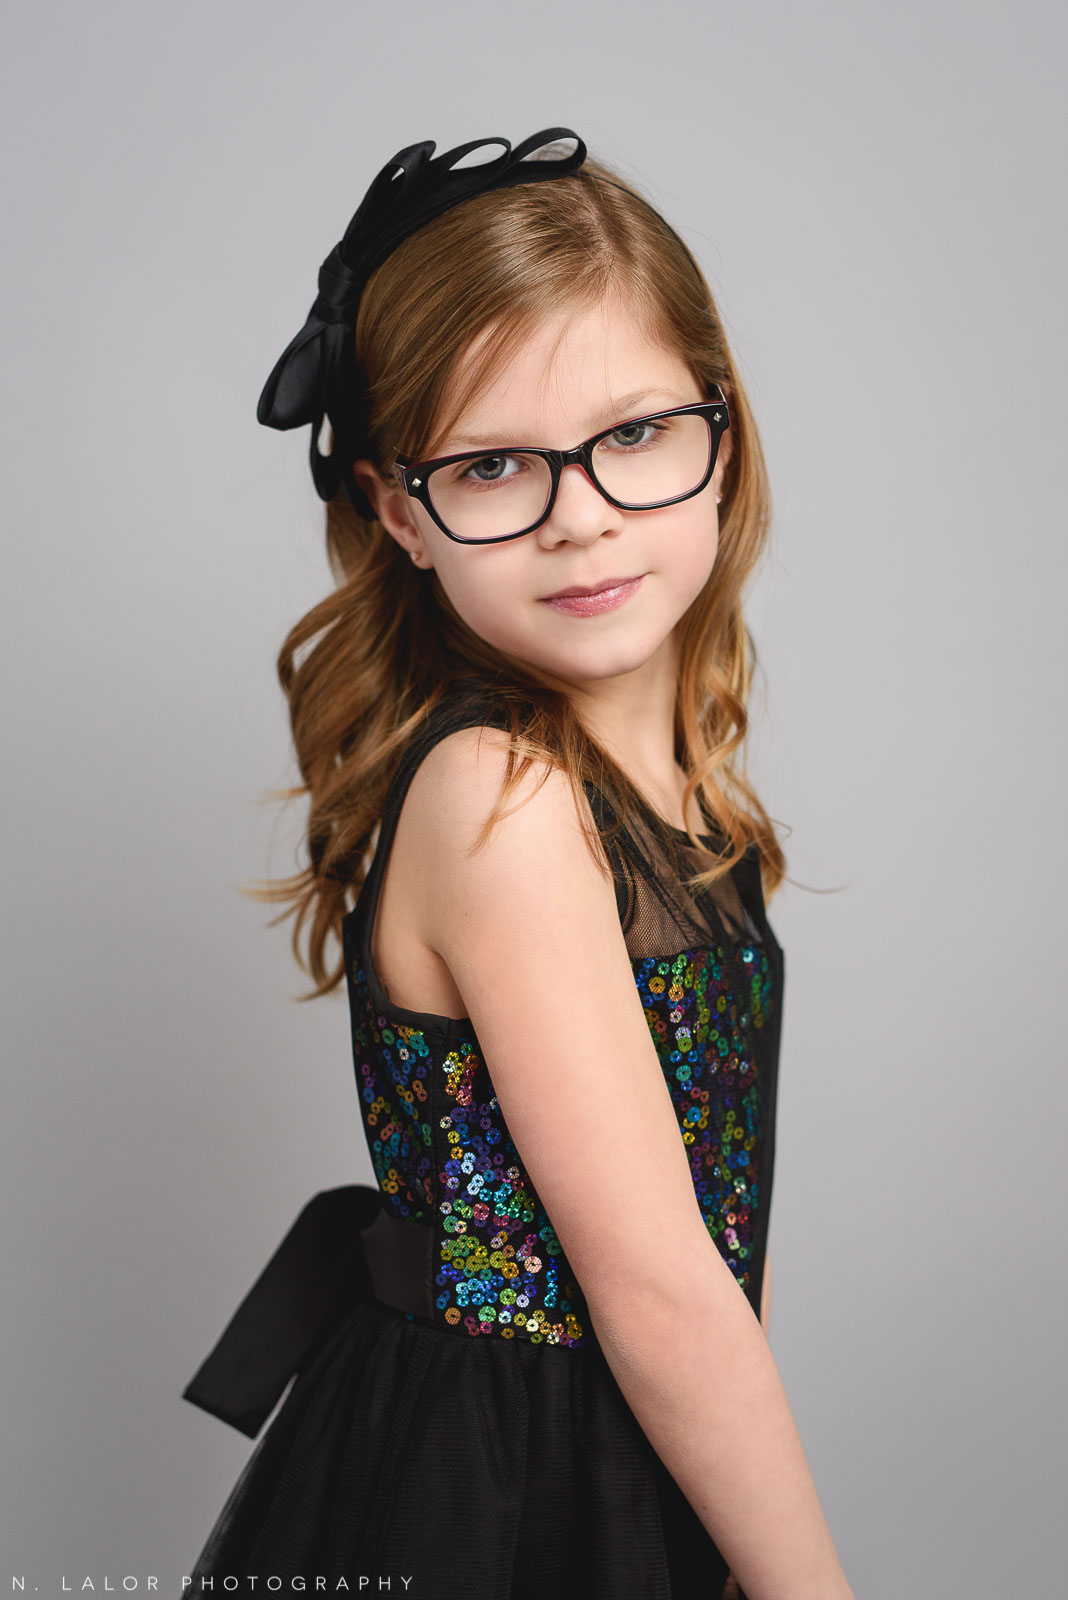 Black sparkle dress with bow headband. Tween photo session with N. Lalor Photography. Studio located in Greenwich, Connecticut.